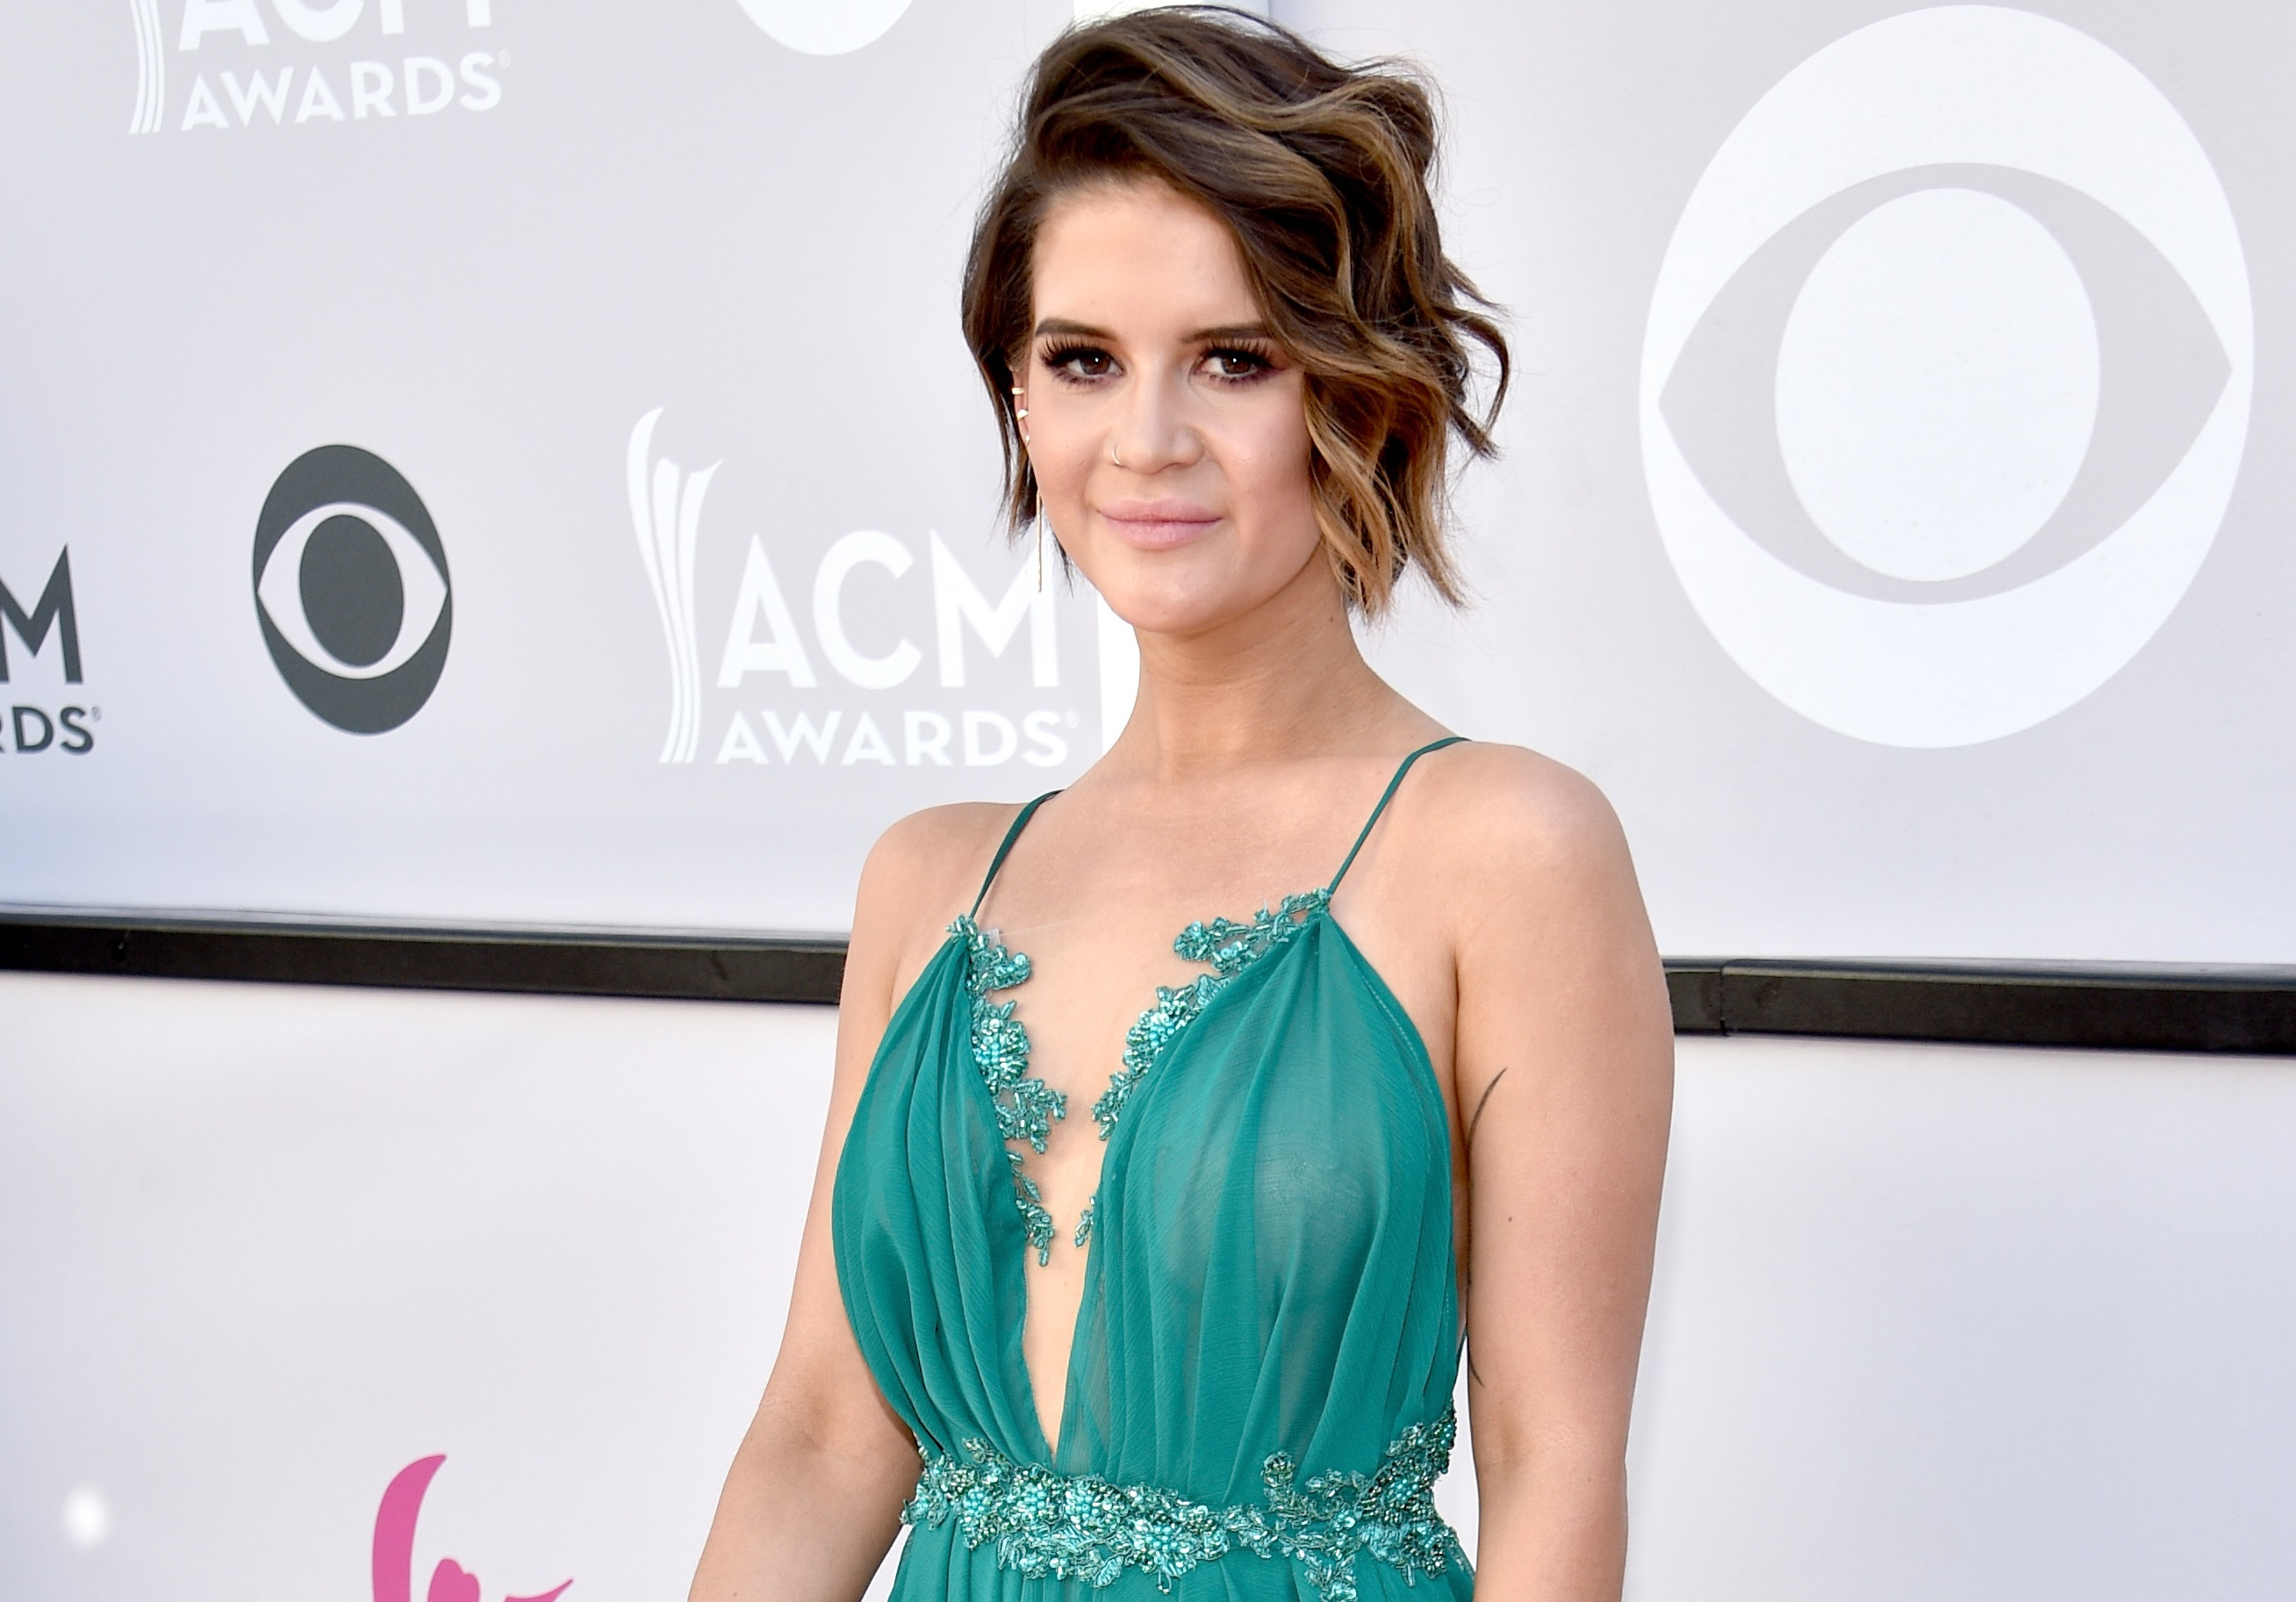 Maren Morris Feels 'Empowered' by New Short Haircut